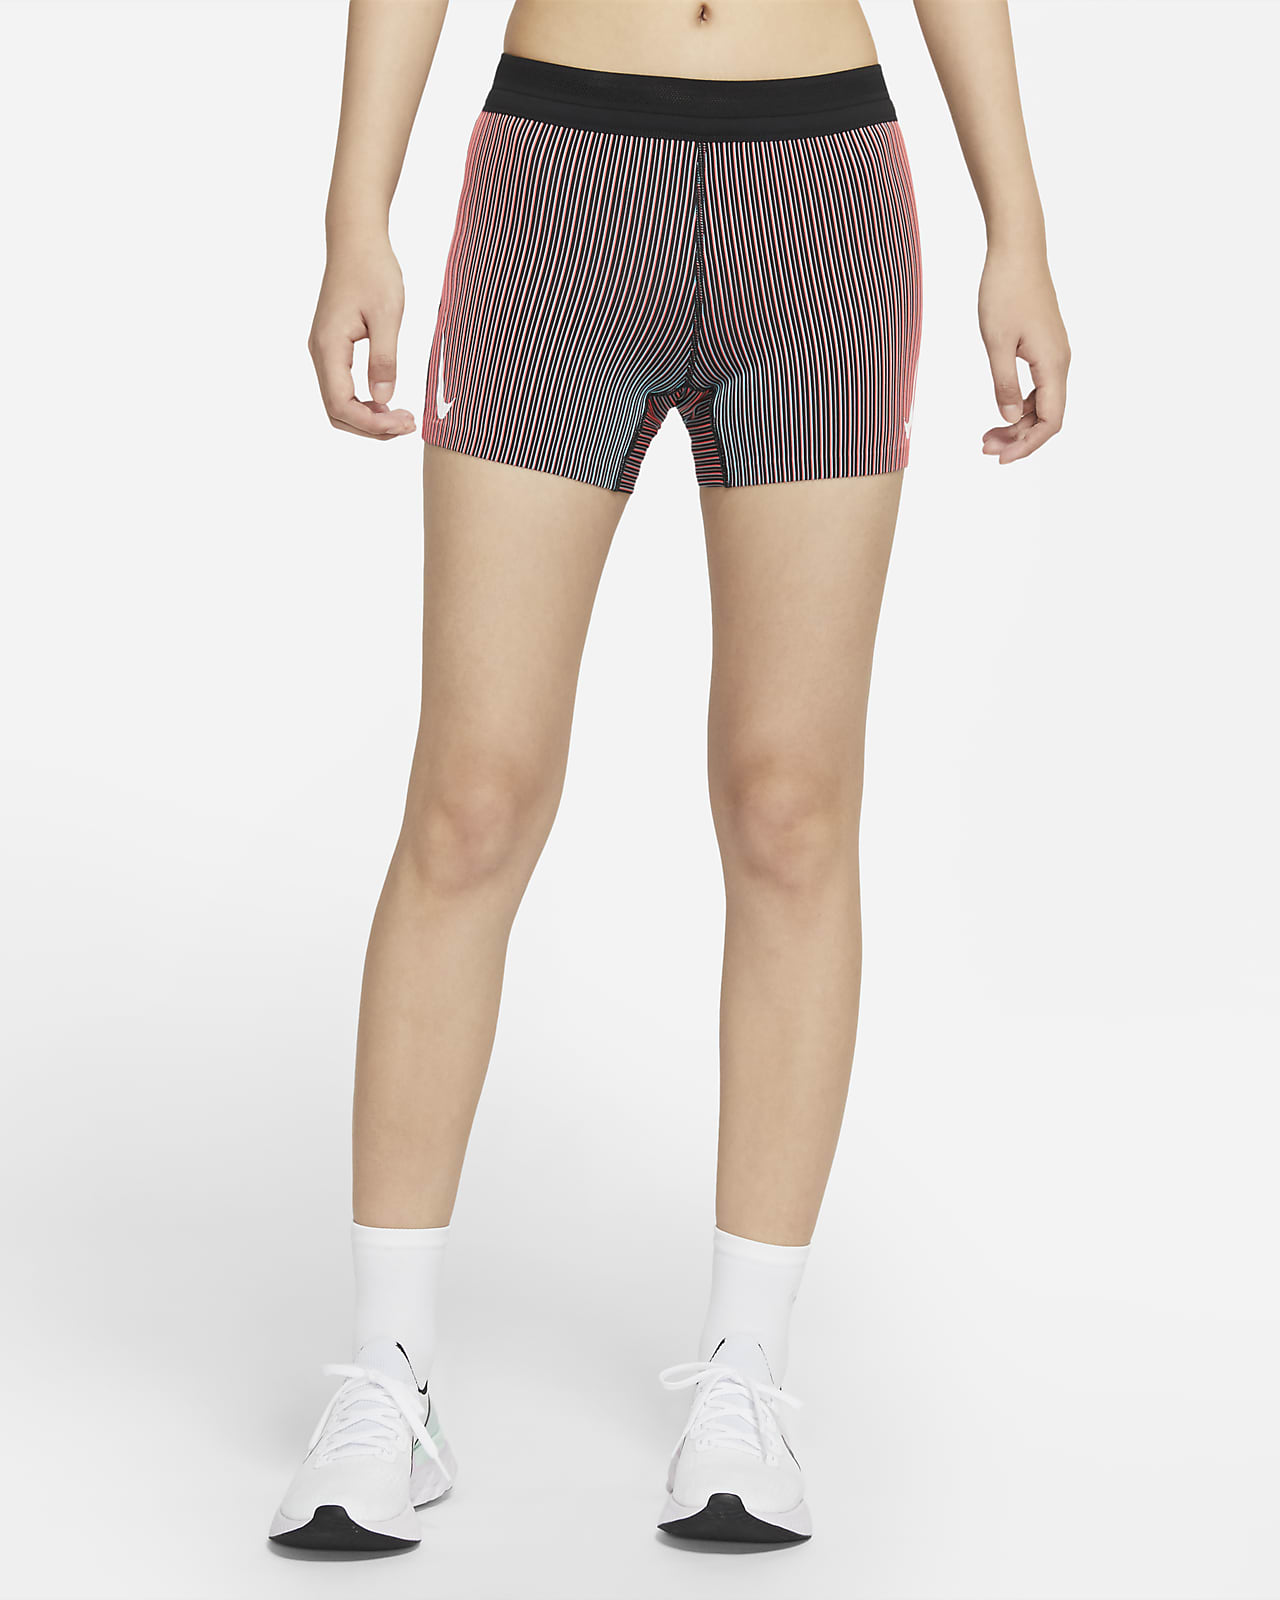 Nike AeroSwift Women's Tight Running Shorts